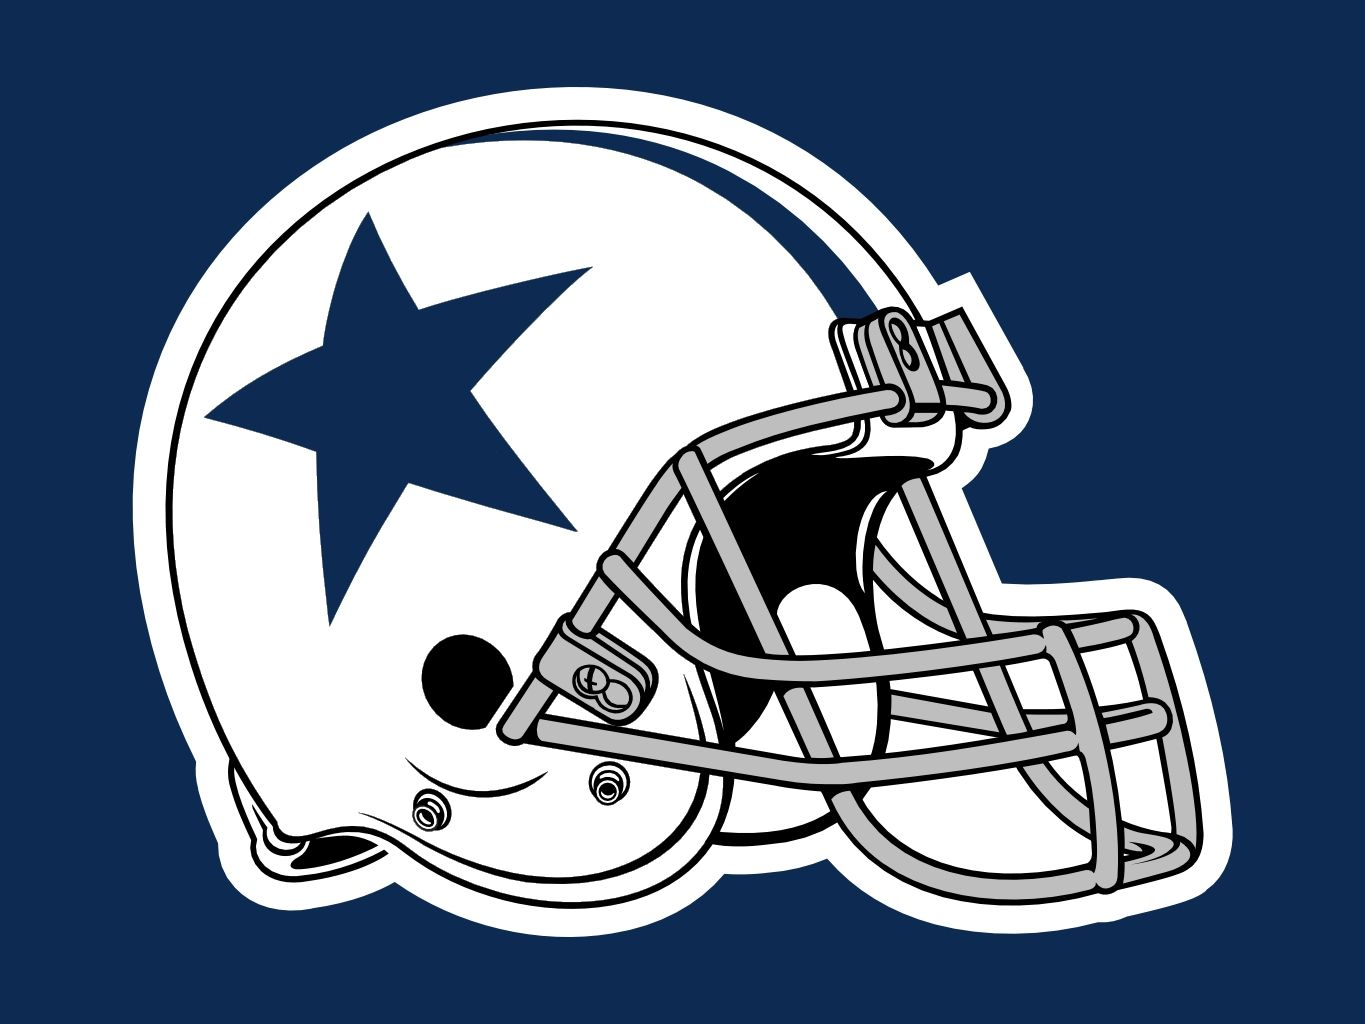 old cowboys helmet.